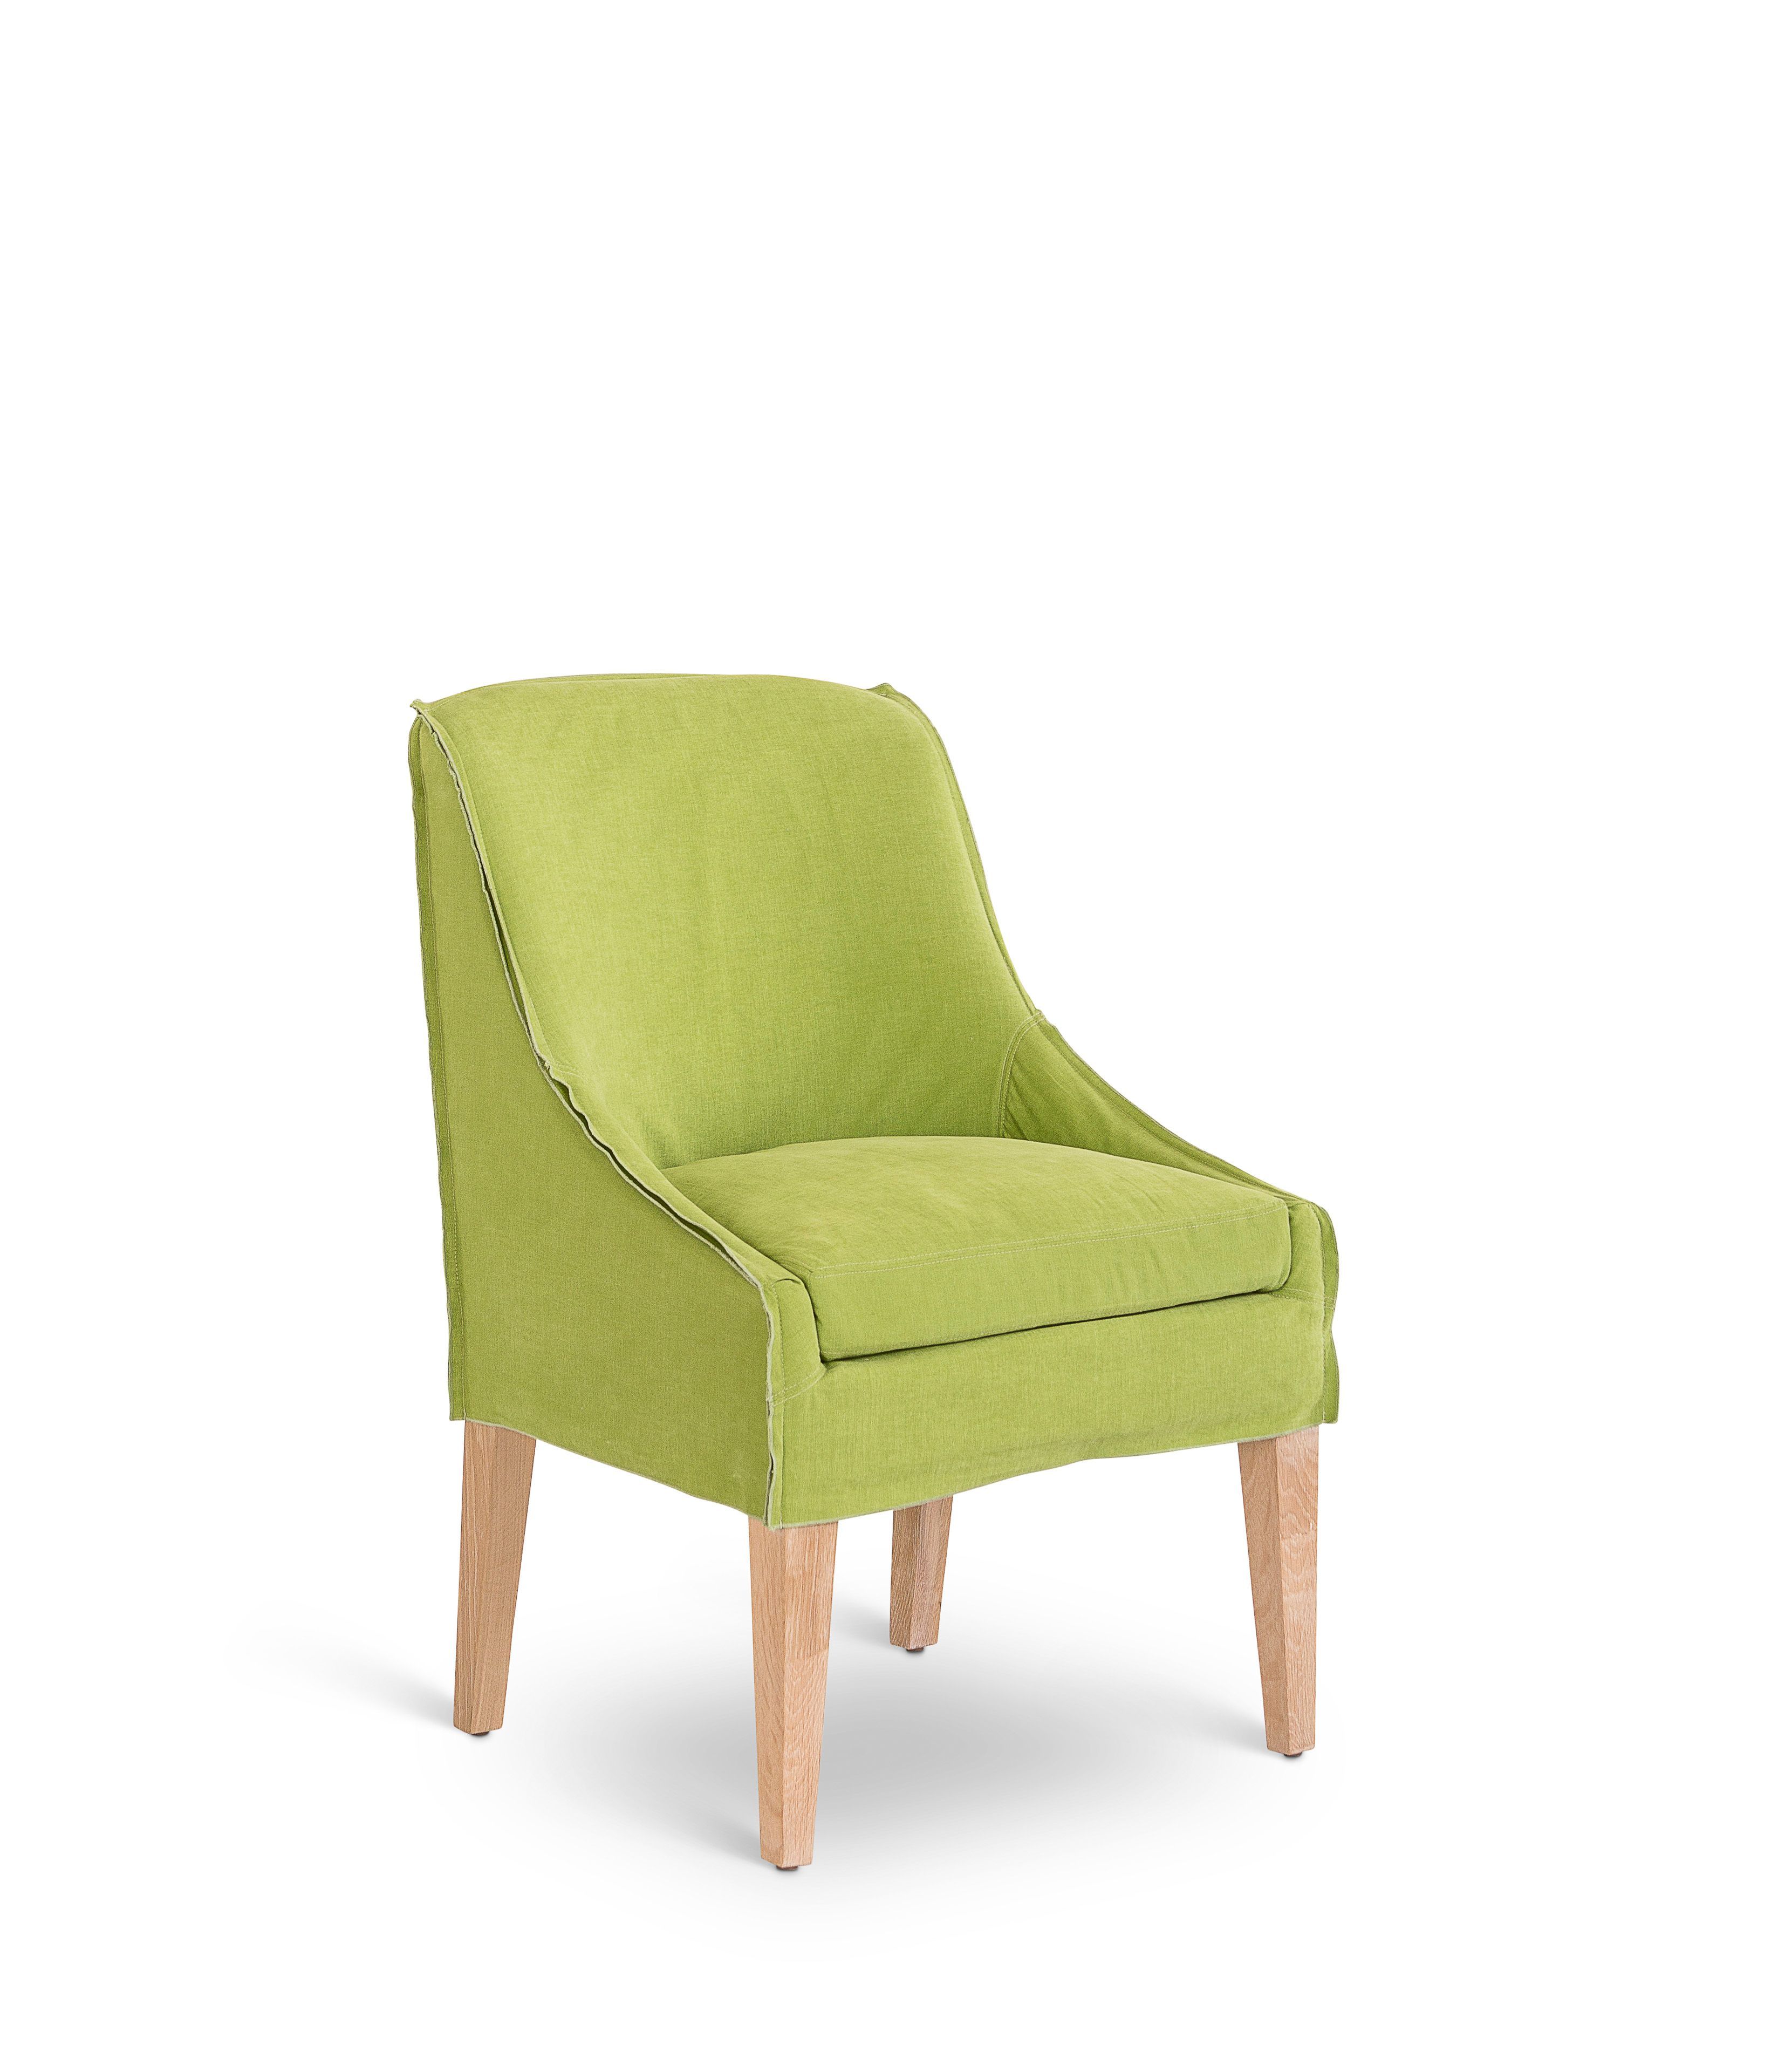 Emily dining chair in sahara cotton